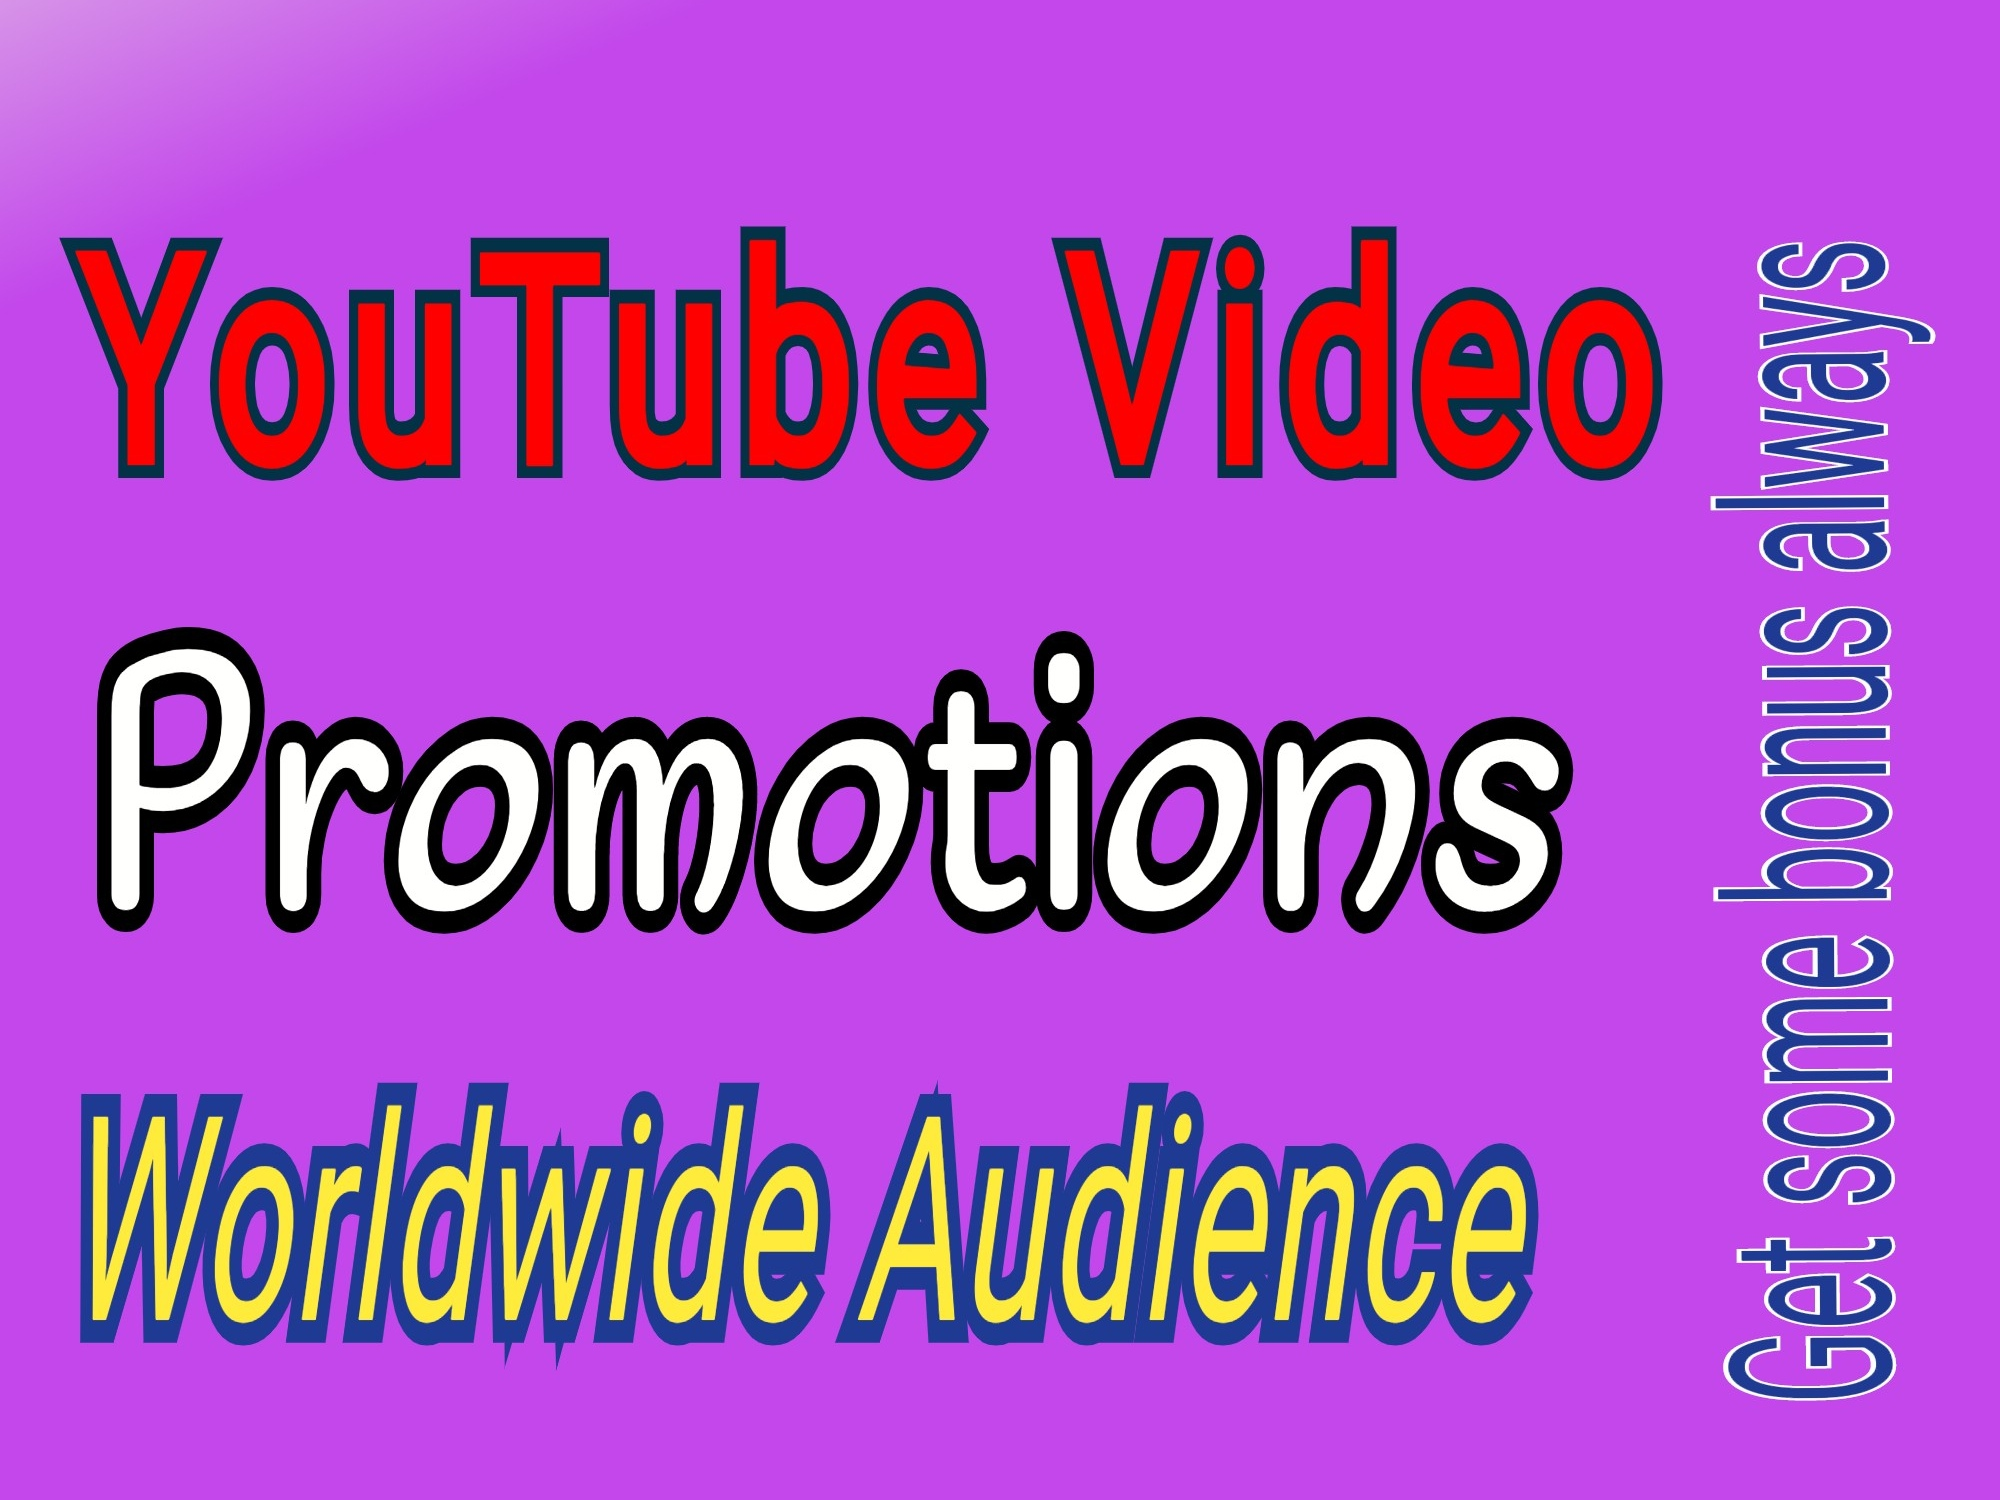 YouTube Promotions for increasing Audience on your Video